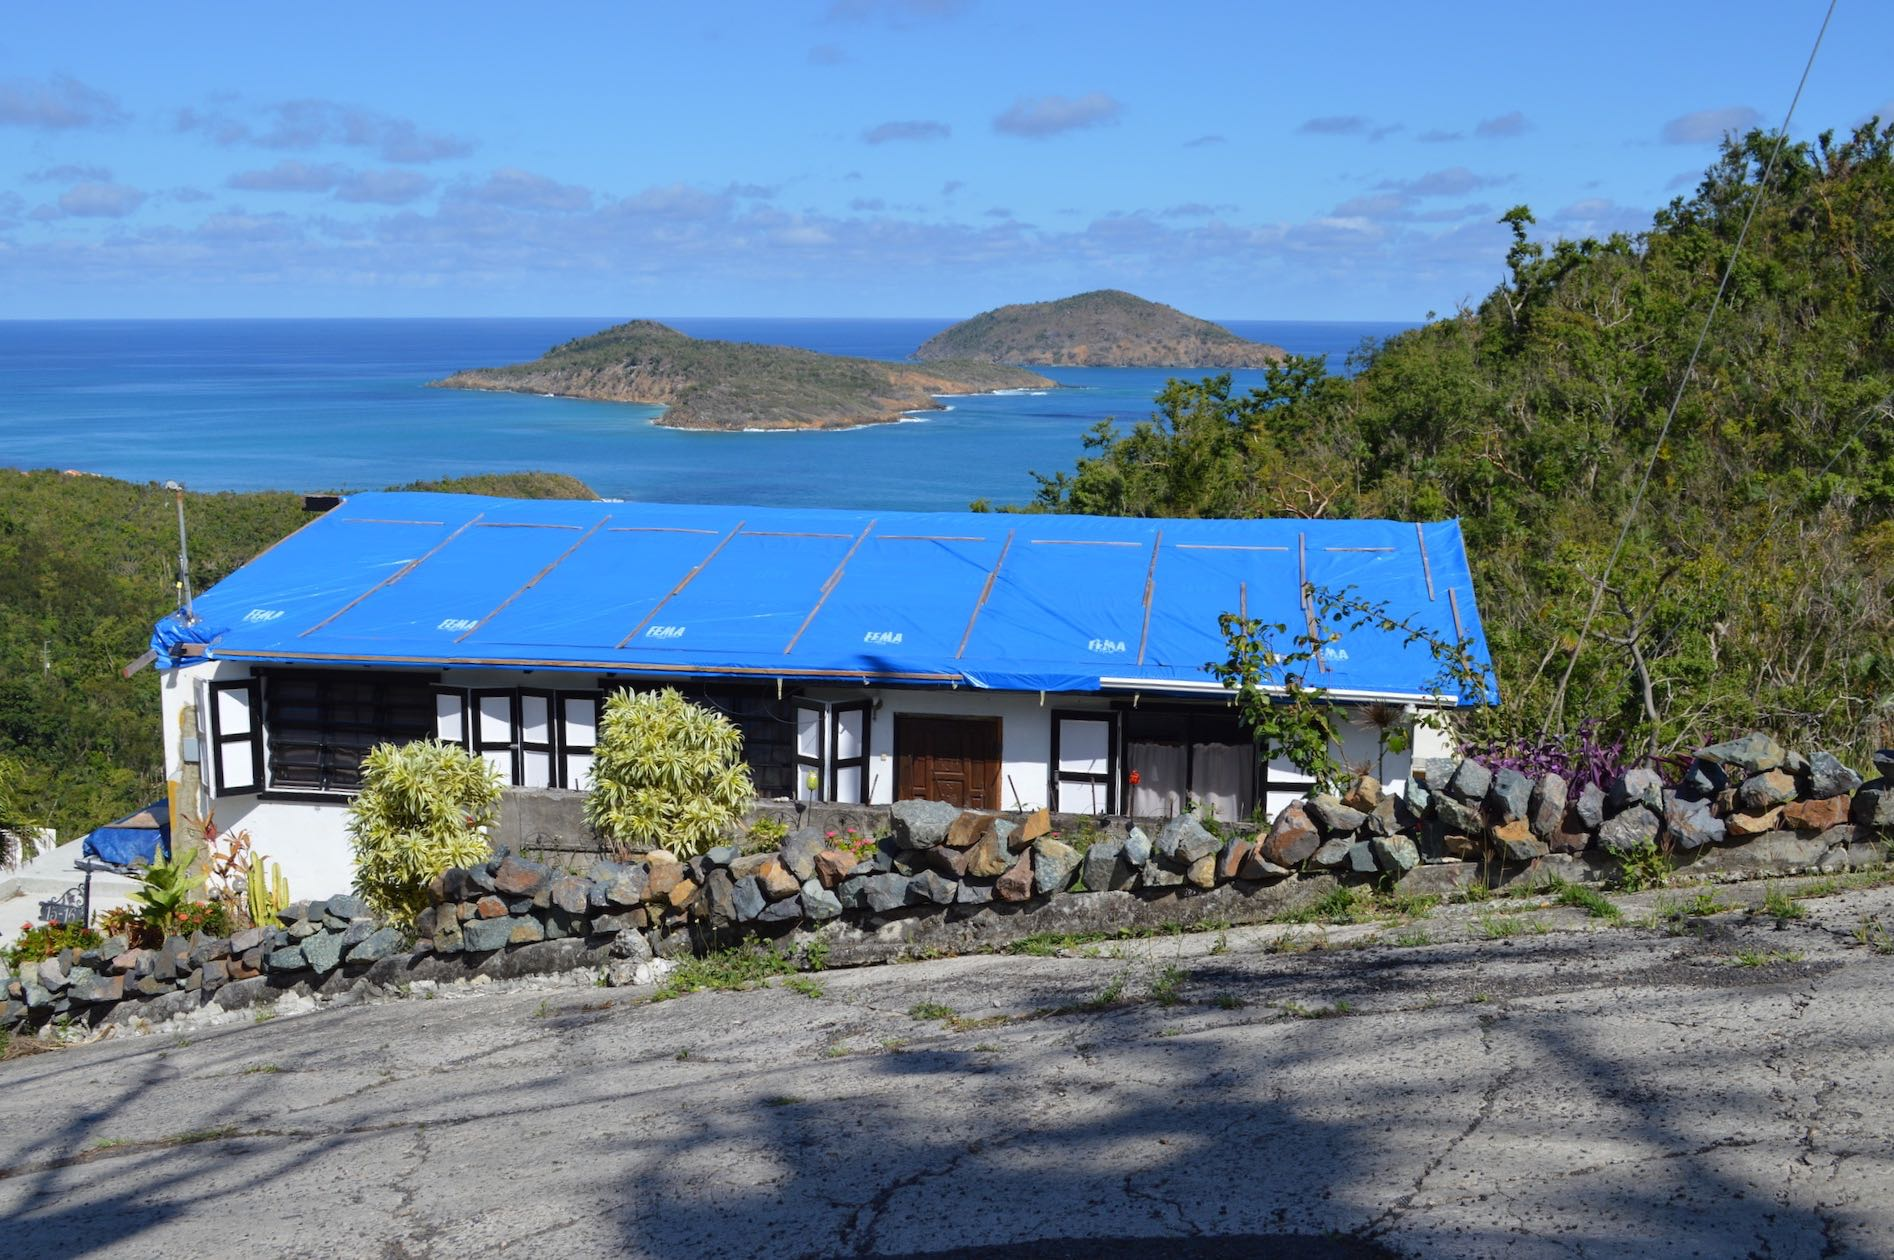 Blue tarps covering damaged roofs dot the landscape of Estate Tutu on St. Thomas in March 2018 after 2017's pair of hurricanes battered the territory. (Bill Kossler photo)